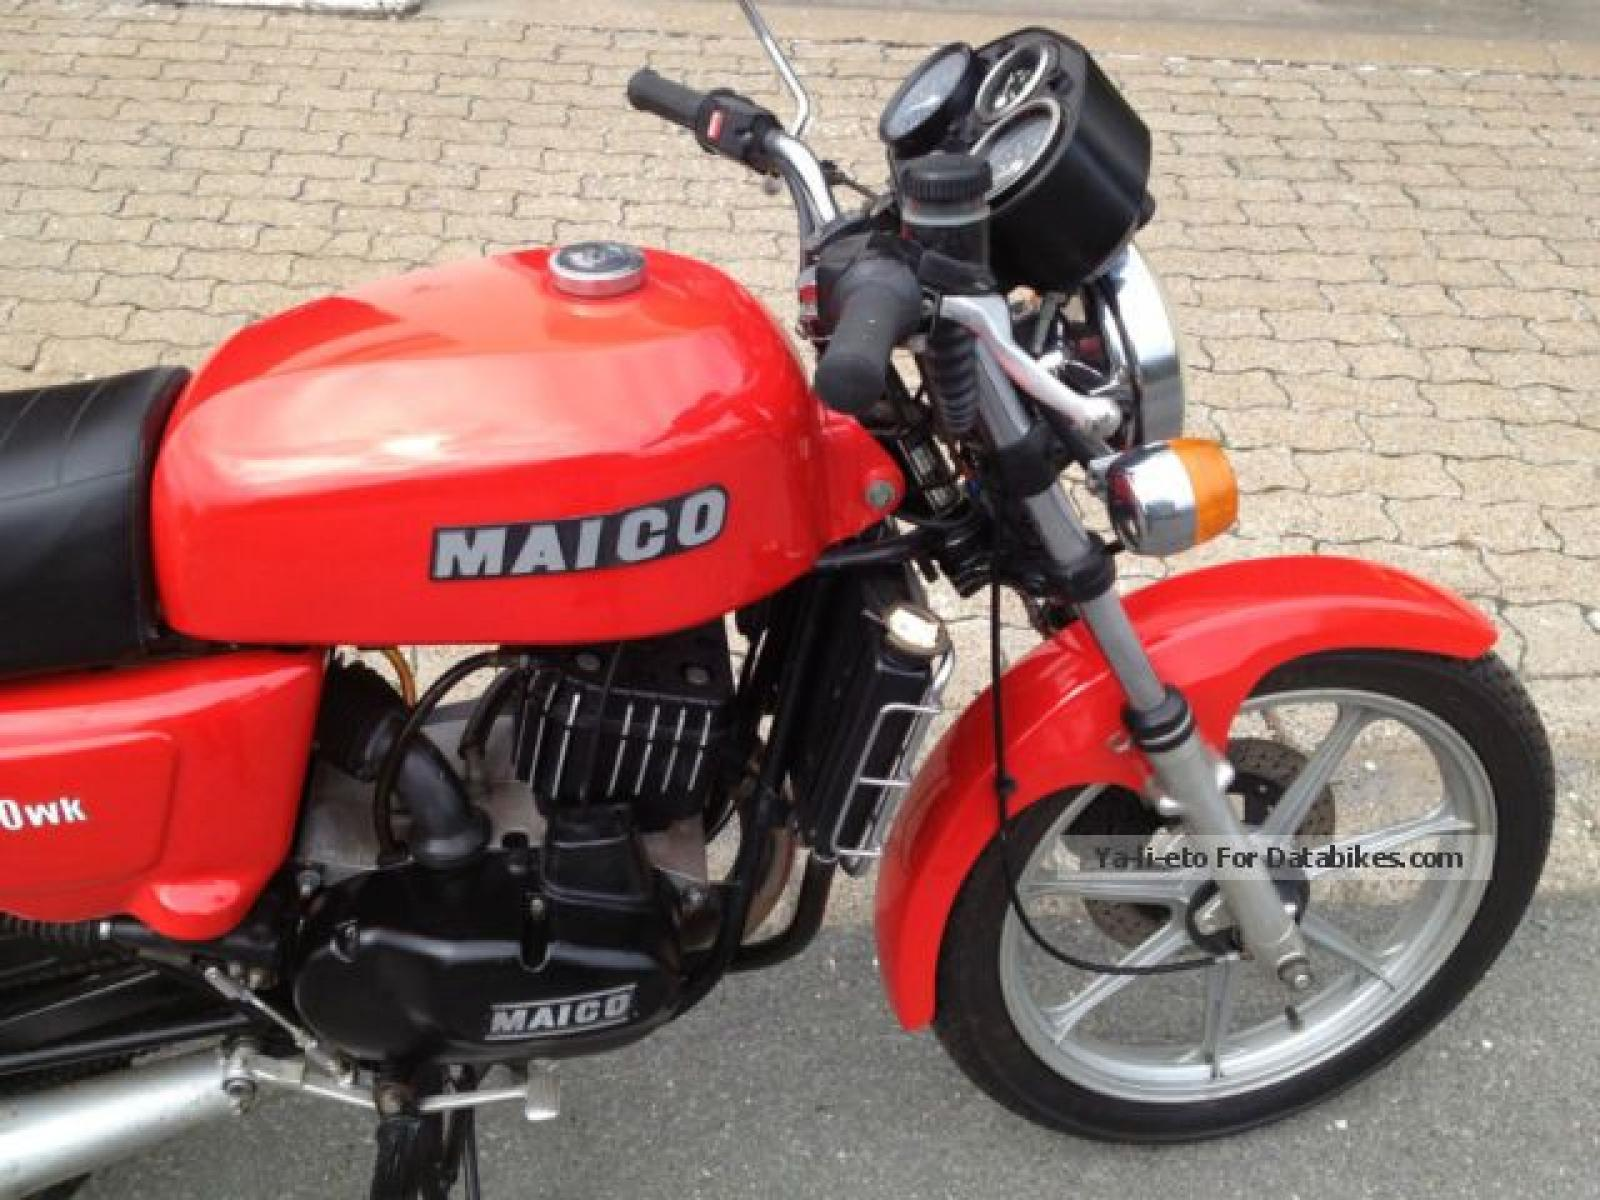 Maico MD 250 WK images #103729